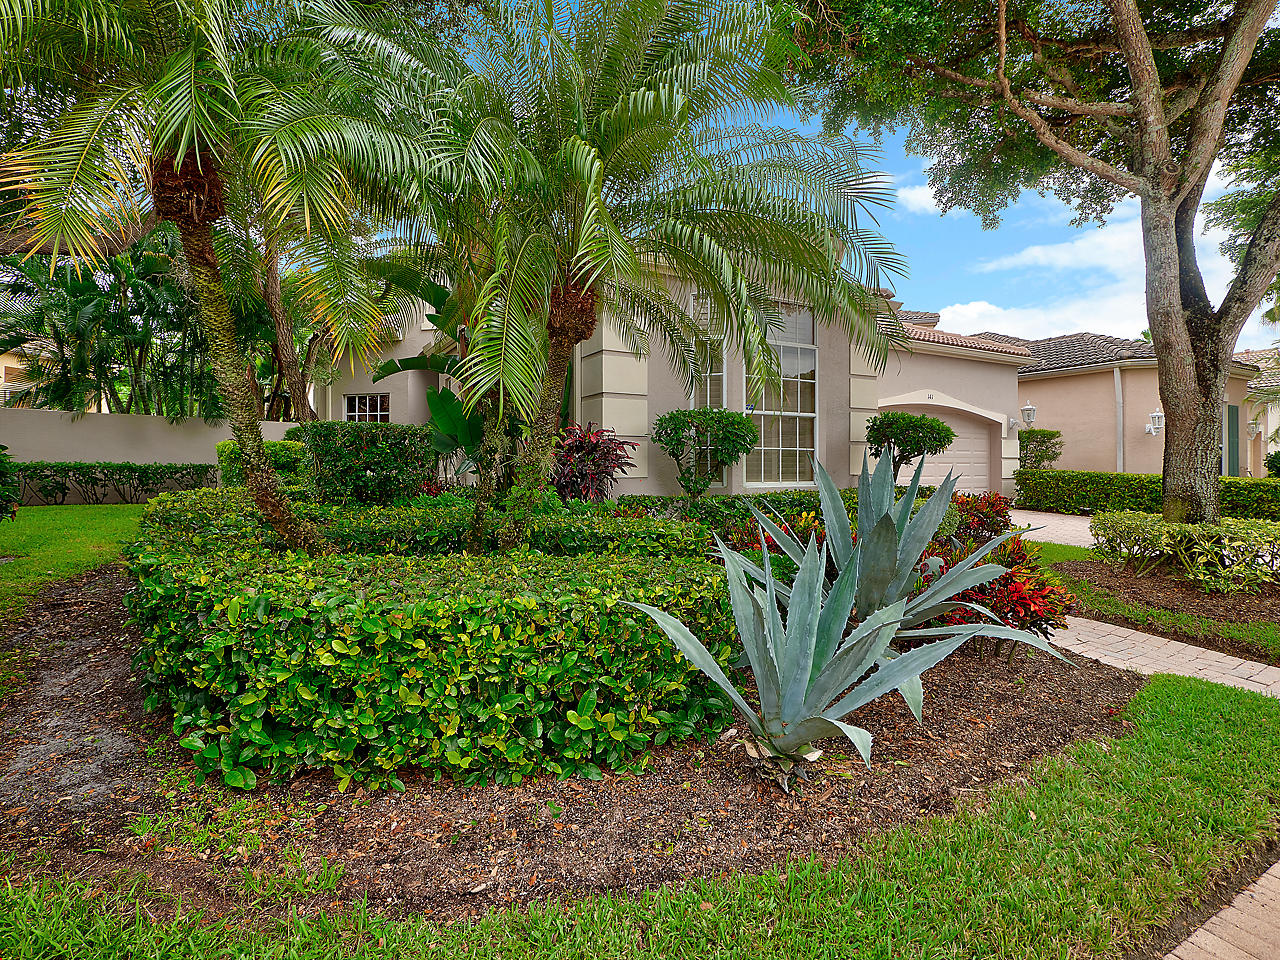 141 Sunset Bay Drive, Palm Beach Gardens, Florida 33418, 3 Bedrooms Bedrooms, ,3 BathroomsBathrooms,A,Single family,Sunset Bay,RX-10567353